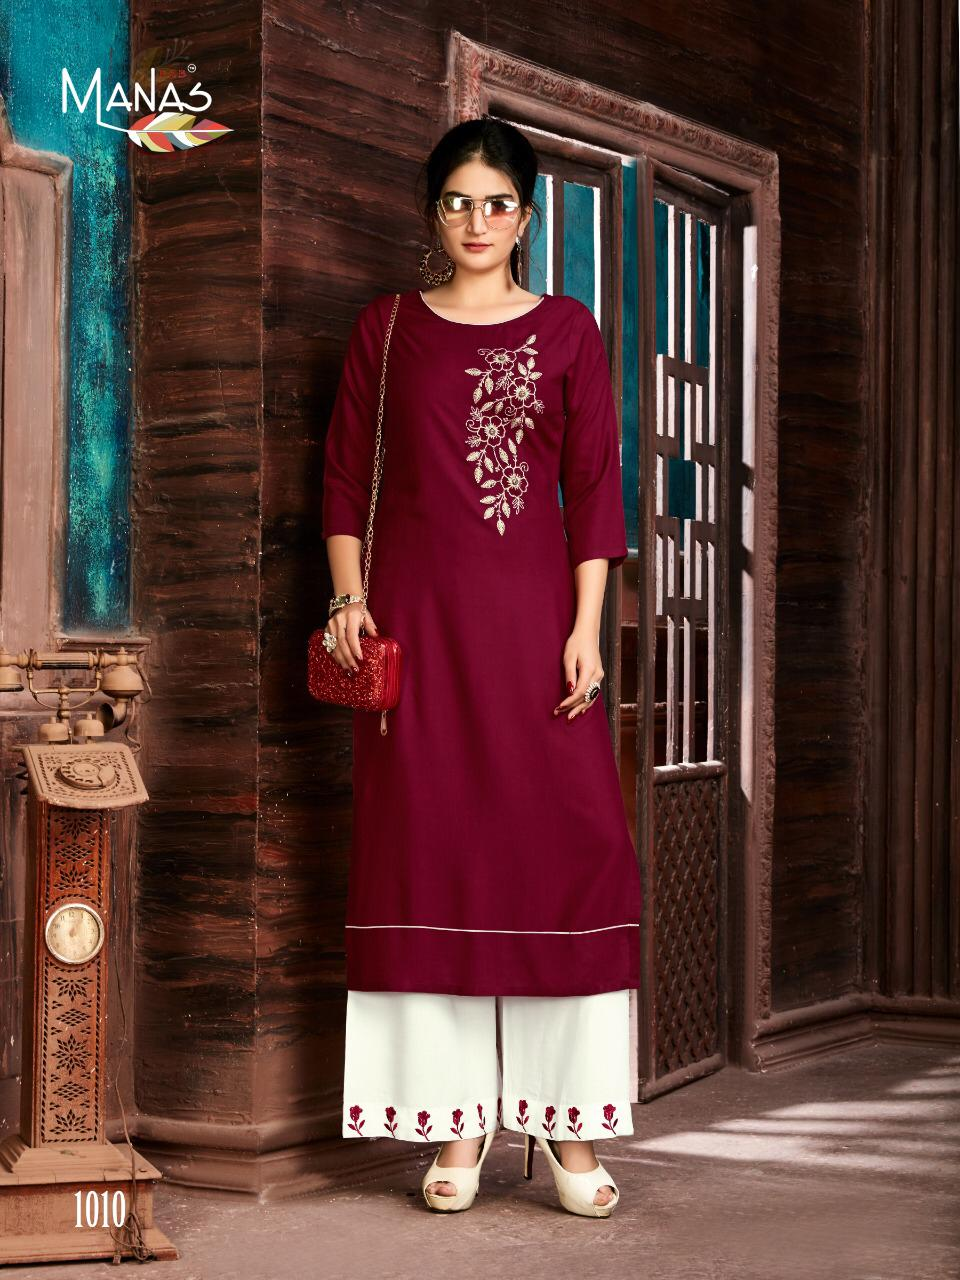 Manas Anishka Vol 3 collection 4